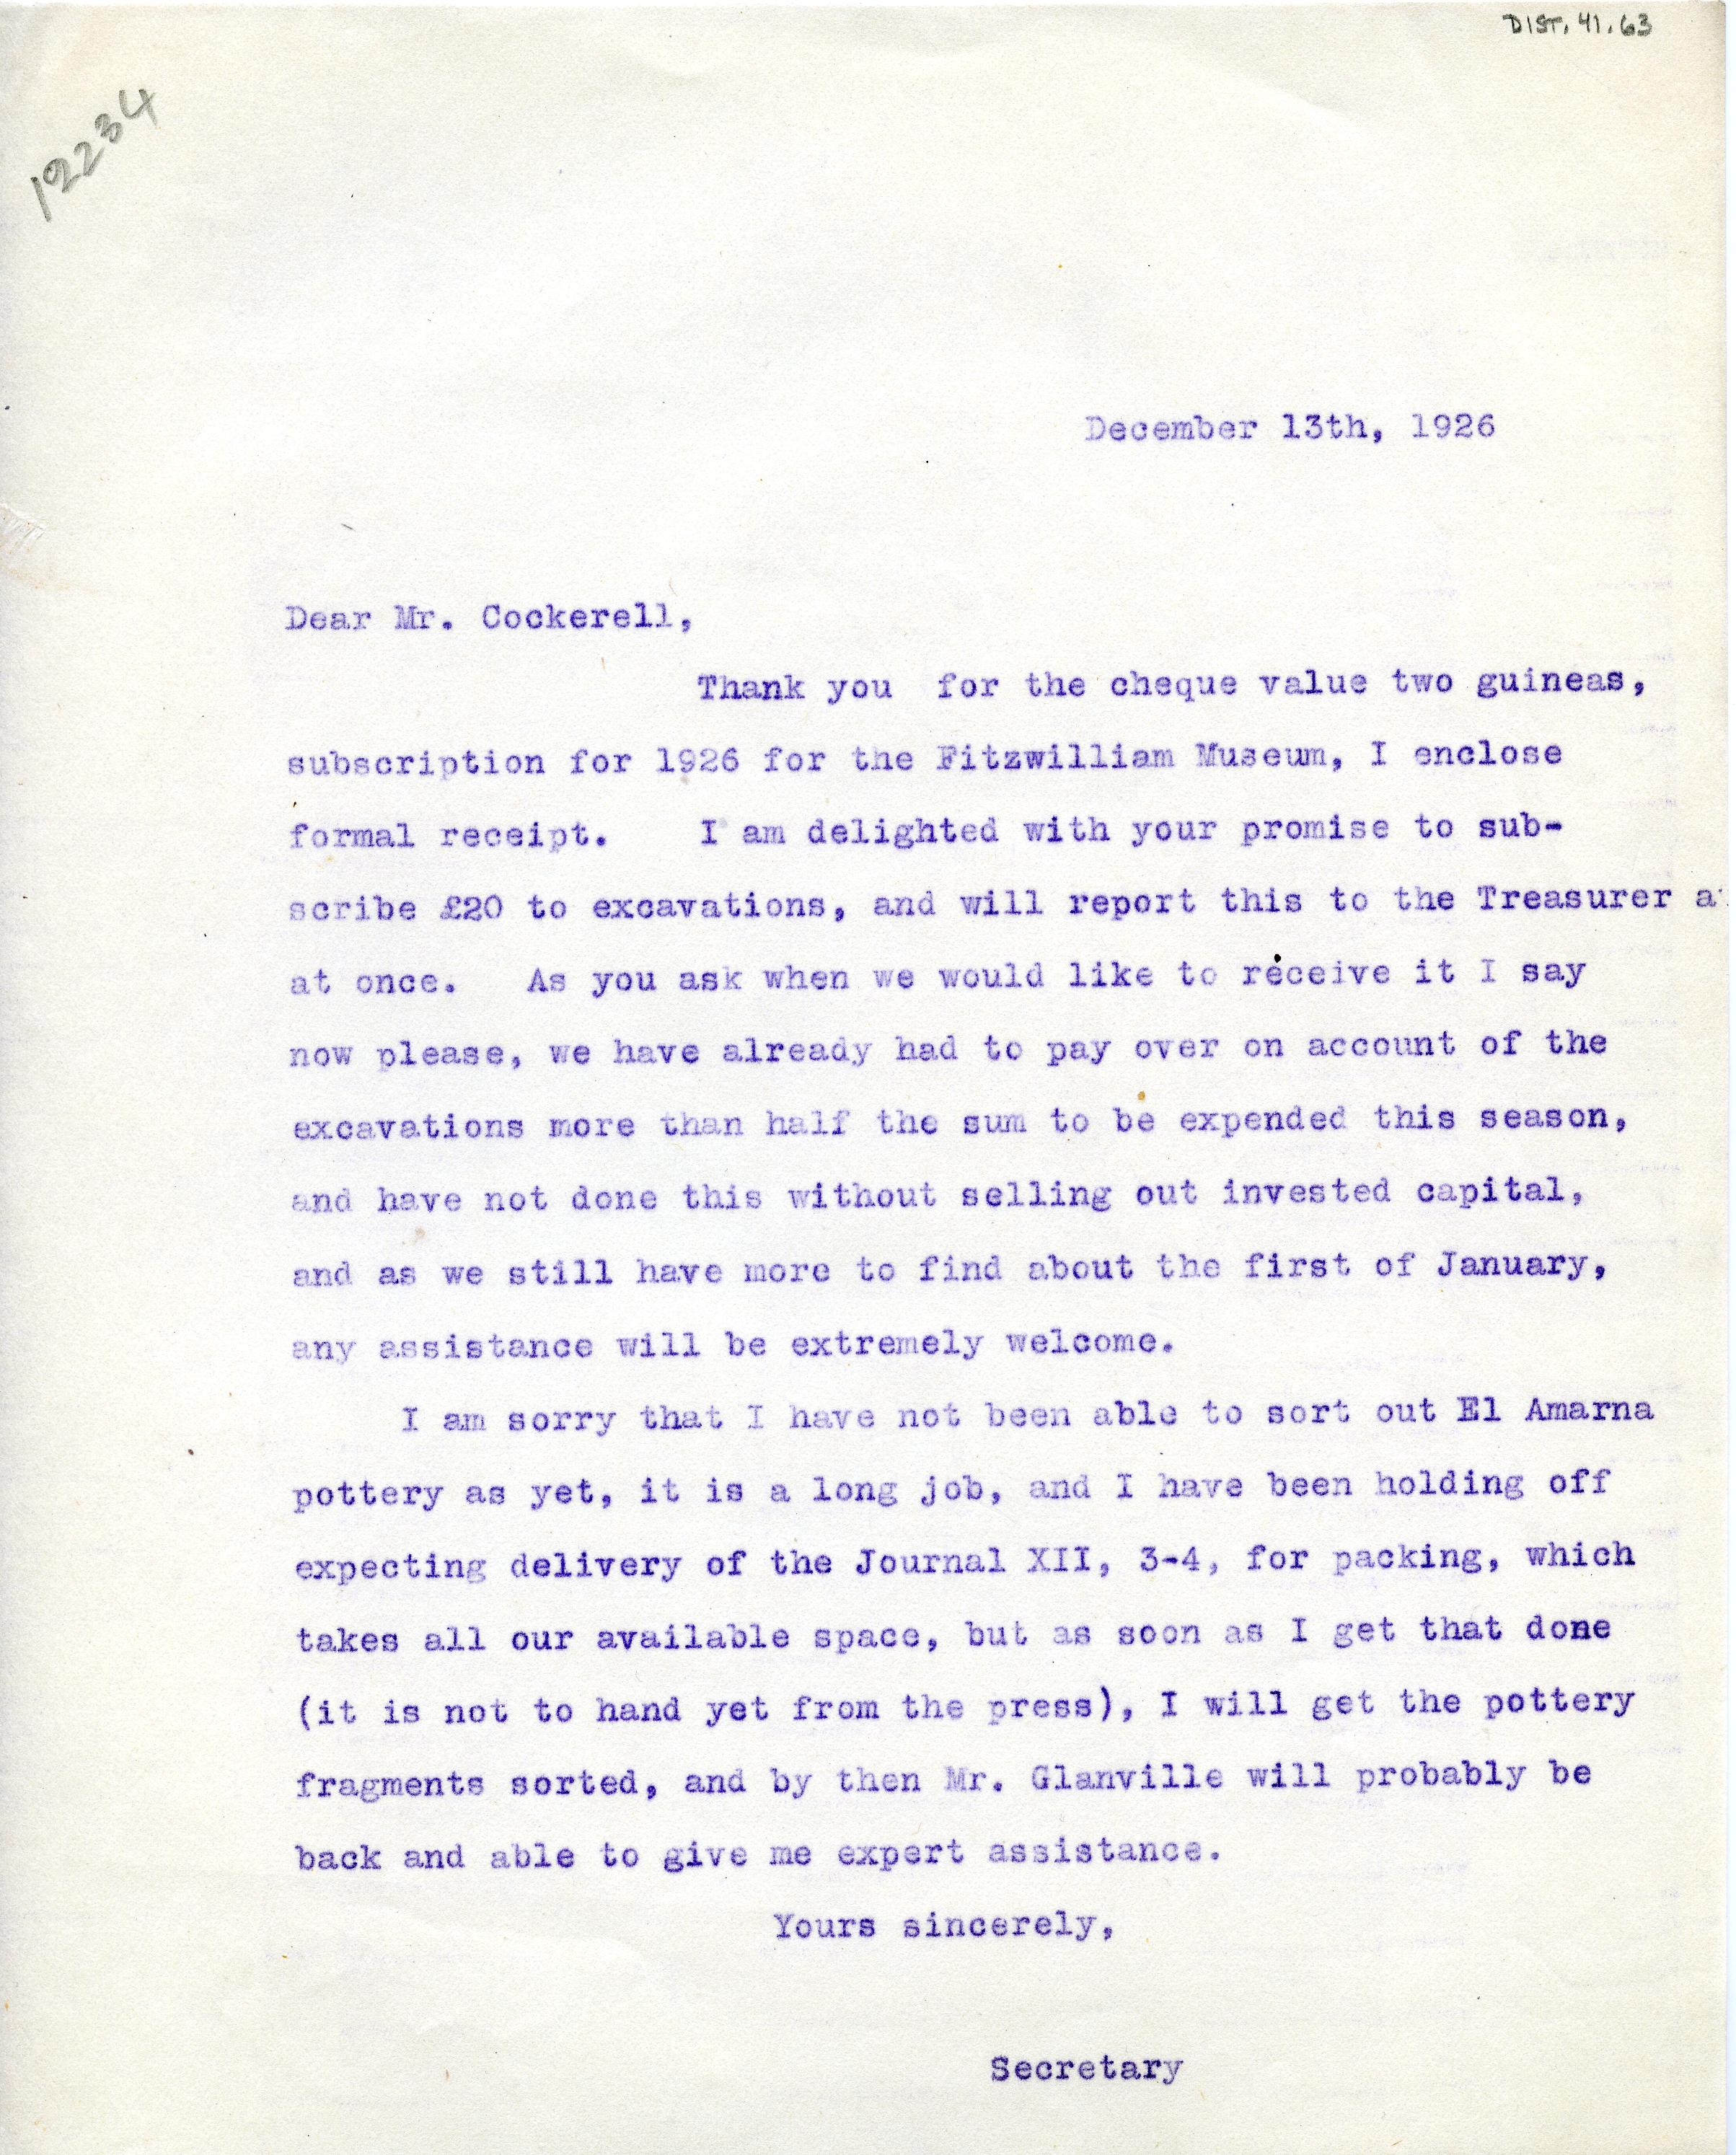 1922-76 Miscellaneous correspondence with museums DIST.41.63